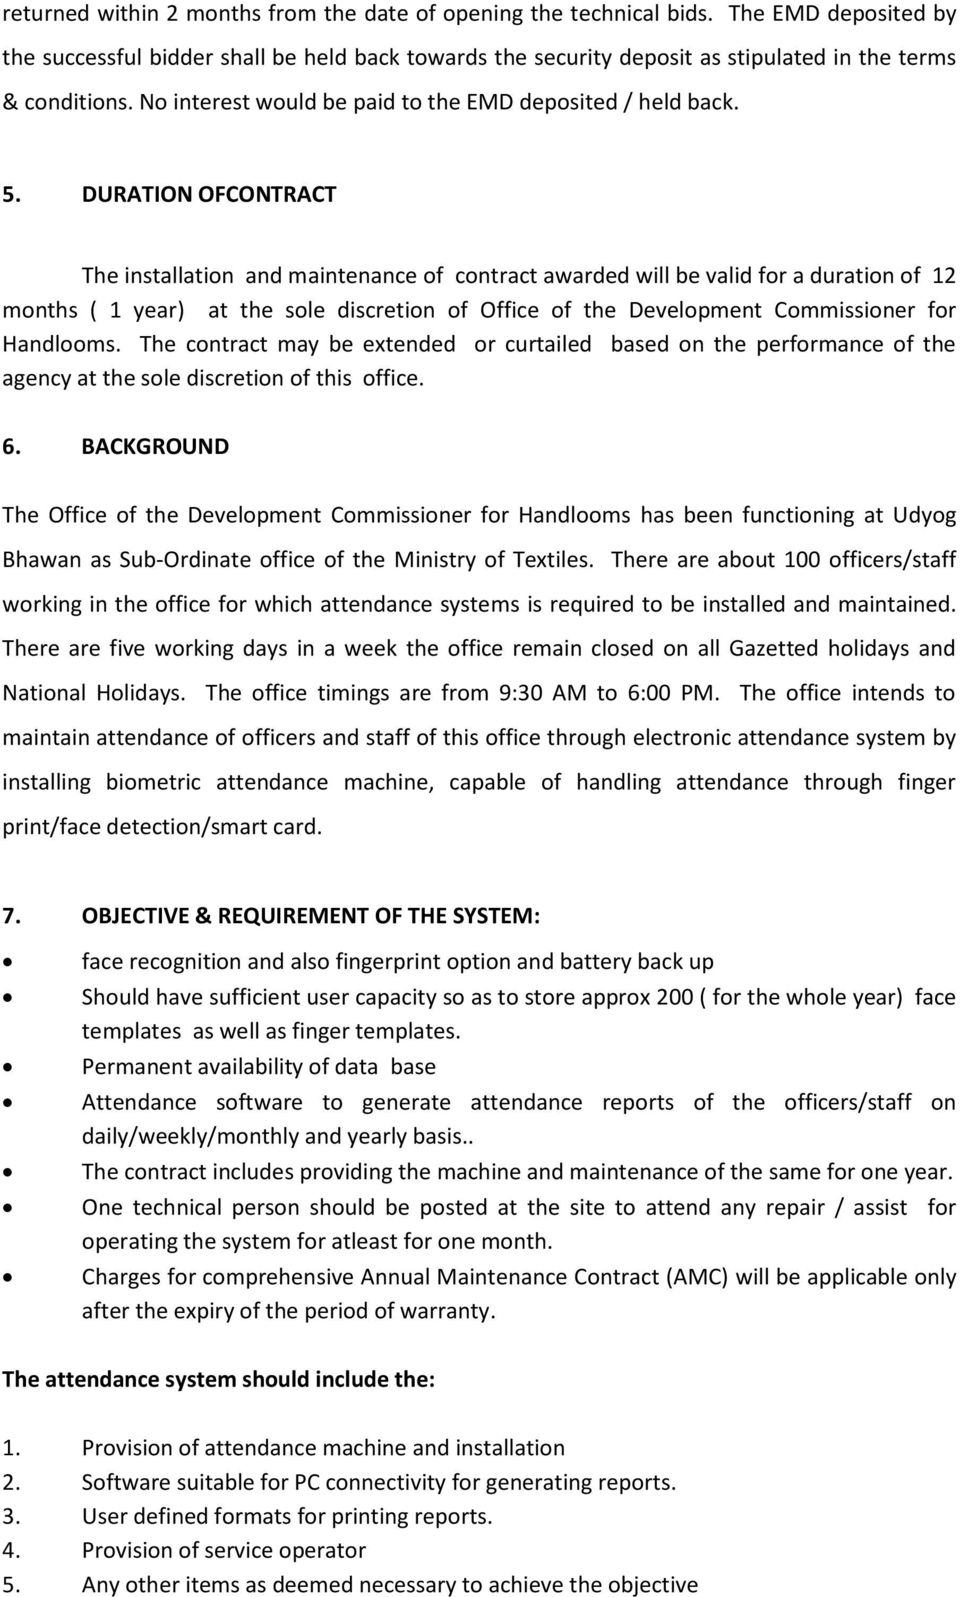 DURATION OFCONTRACT The installation and maintenance of contract awarded will be valid for a duration of 12 months ( 1 year) at the sole discretion of Office of the Development Commissioner for